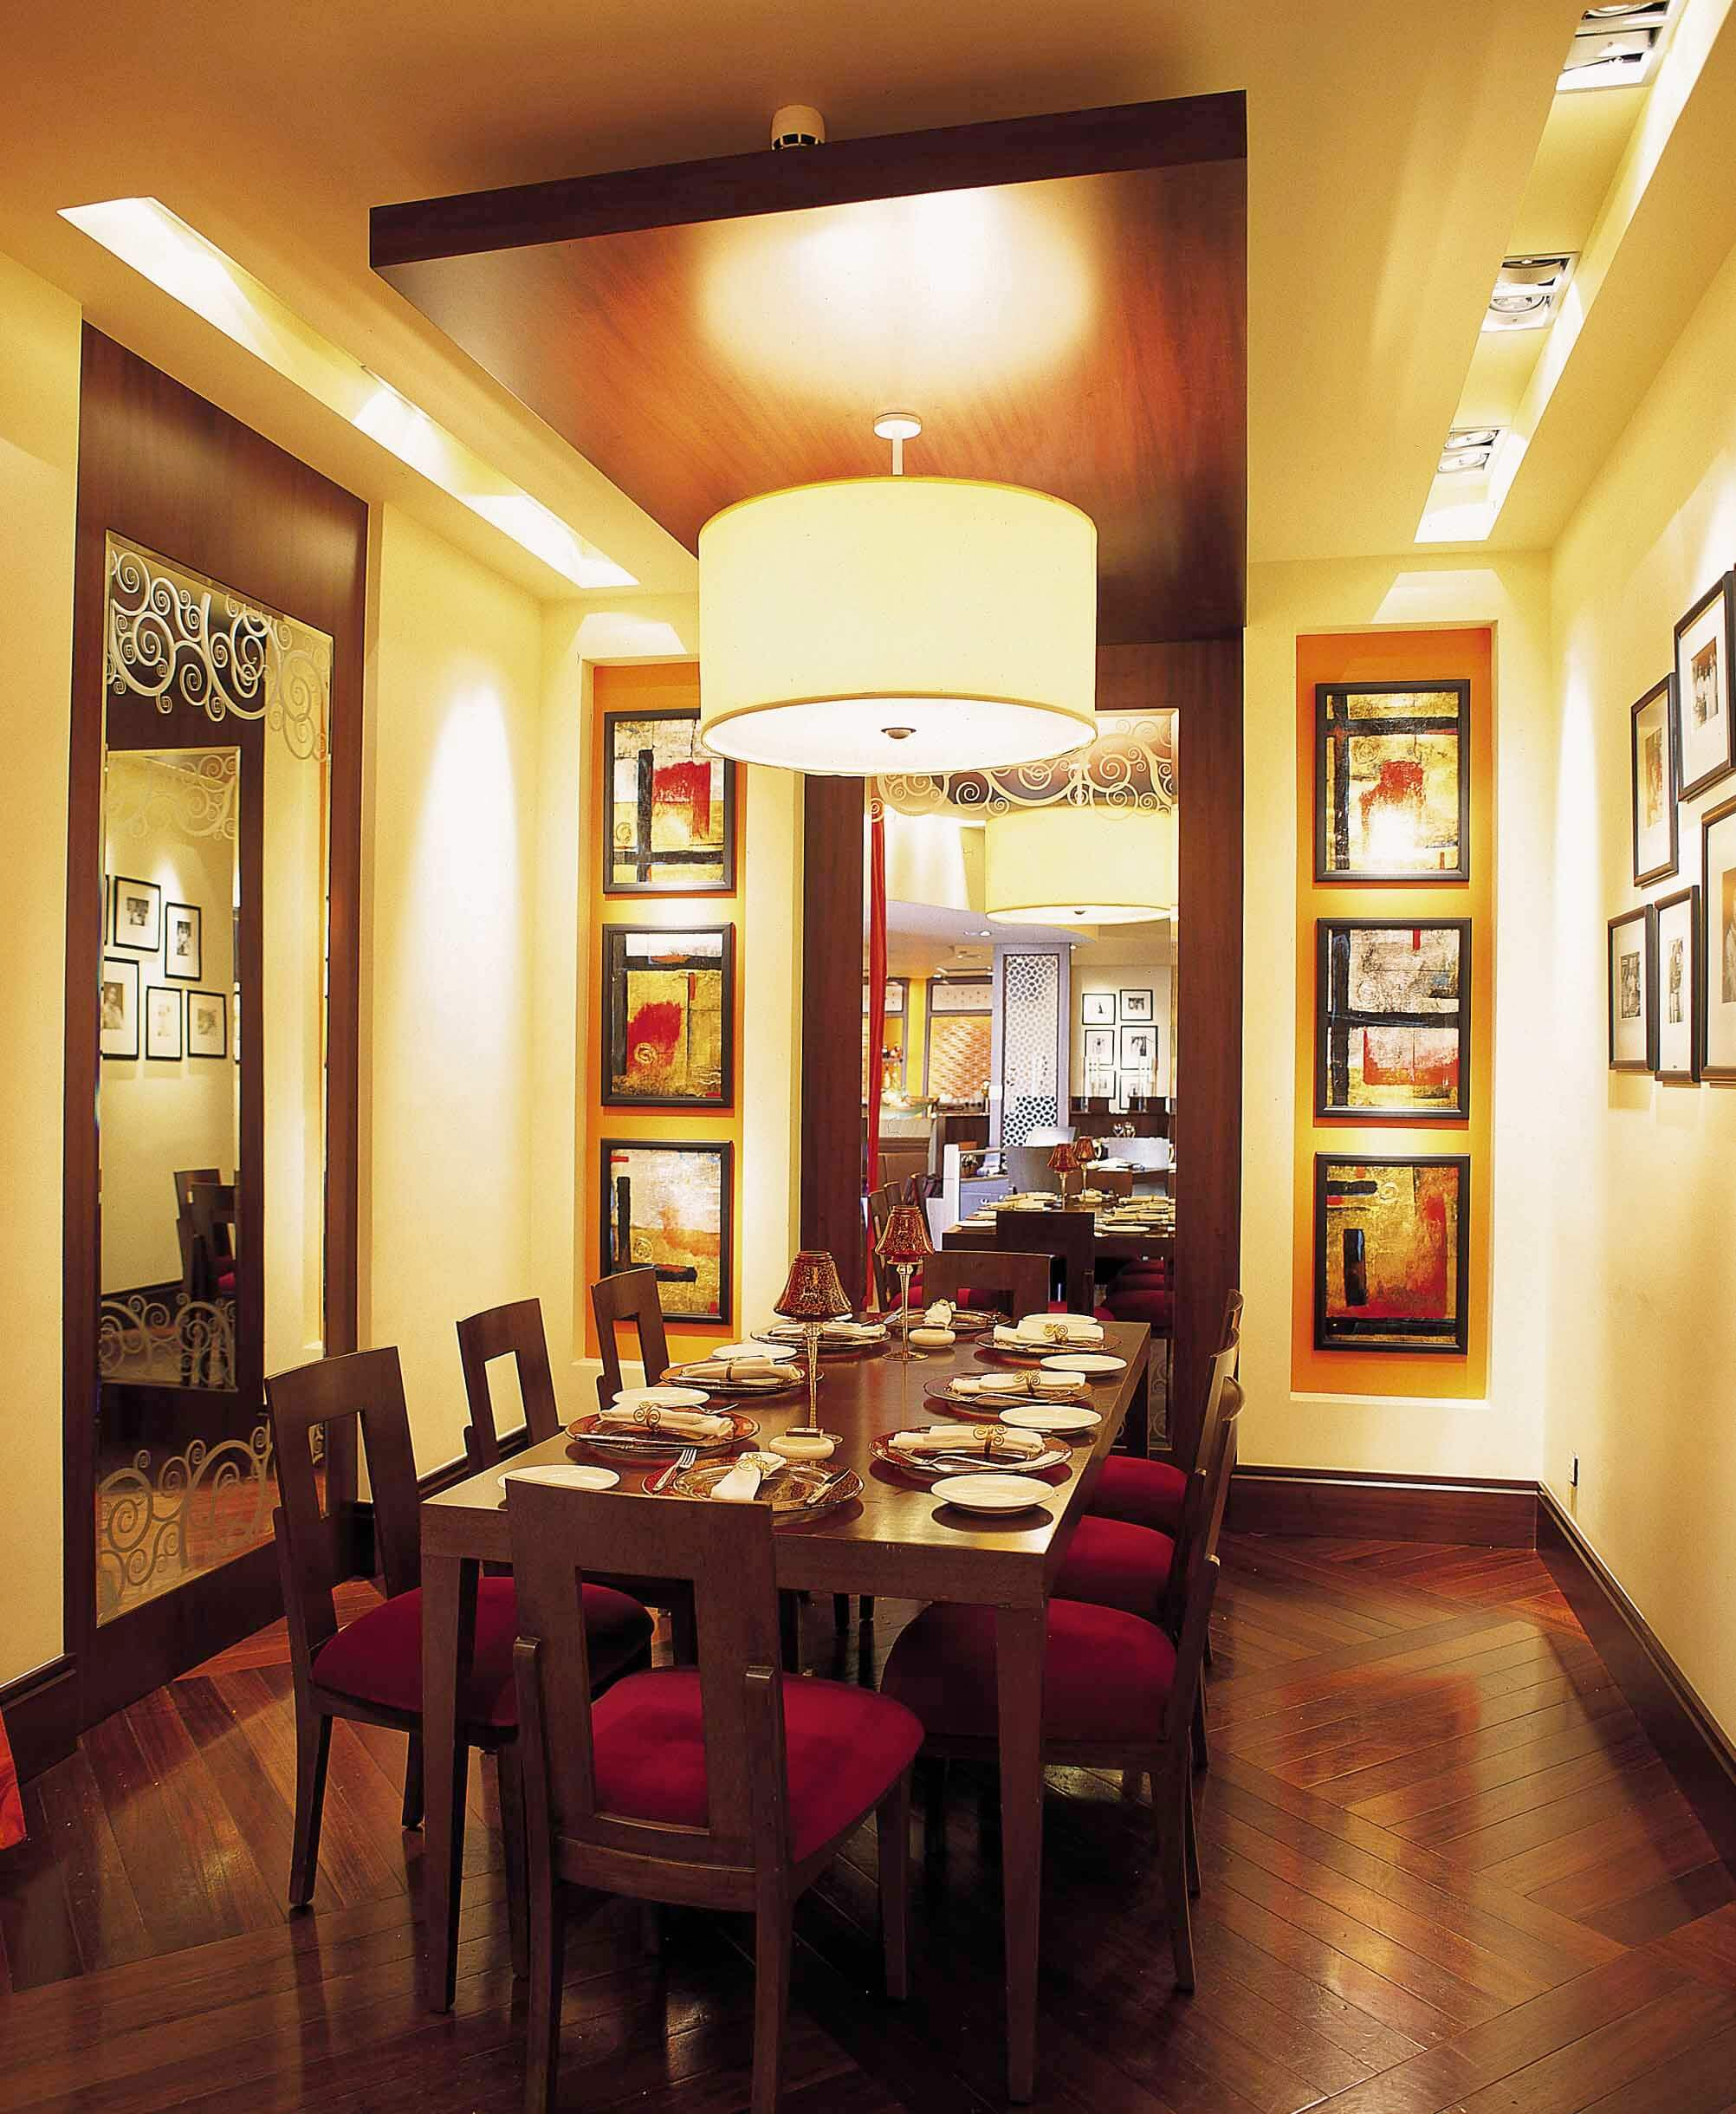 Indian Interior Design: Modern Indian Bar And Restaurant Chain